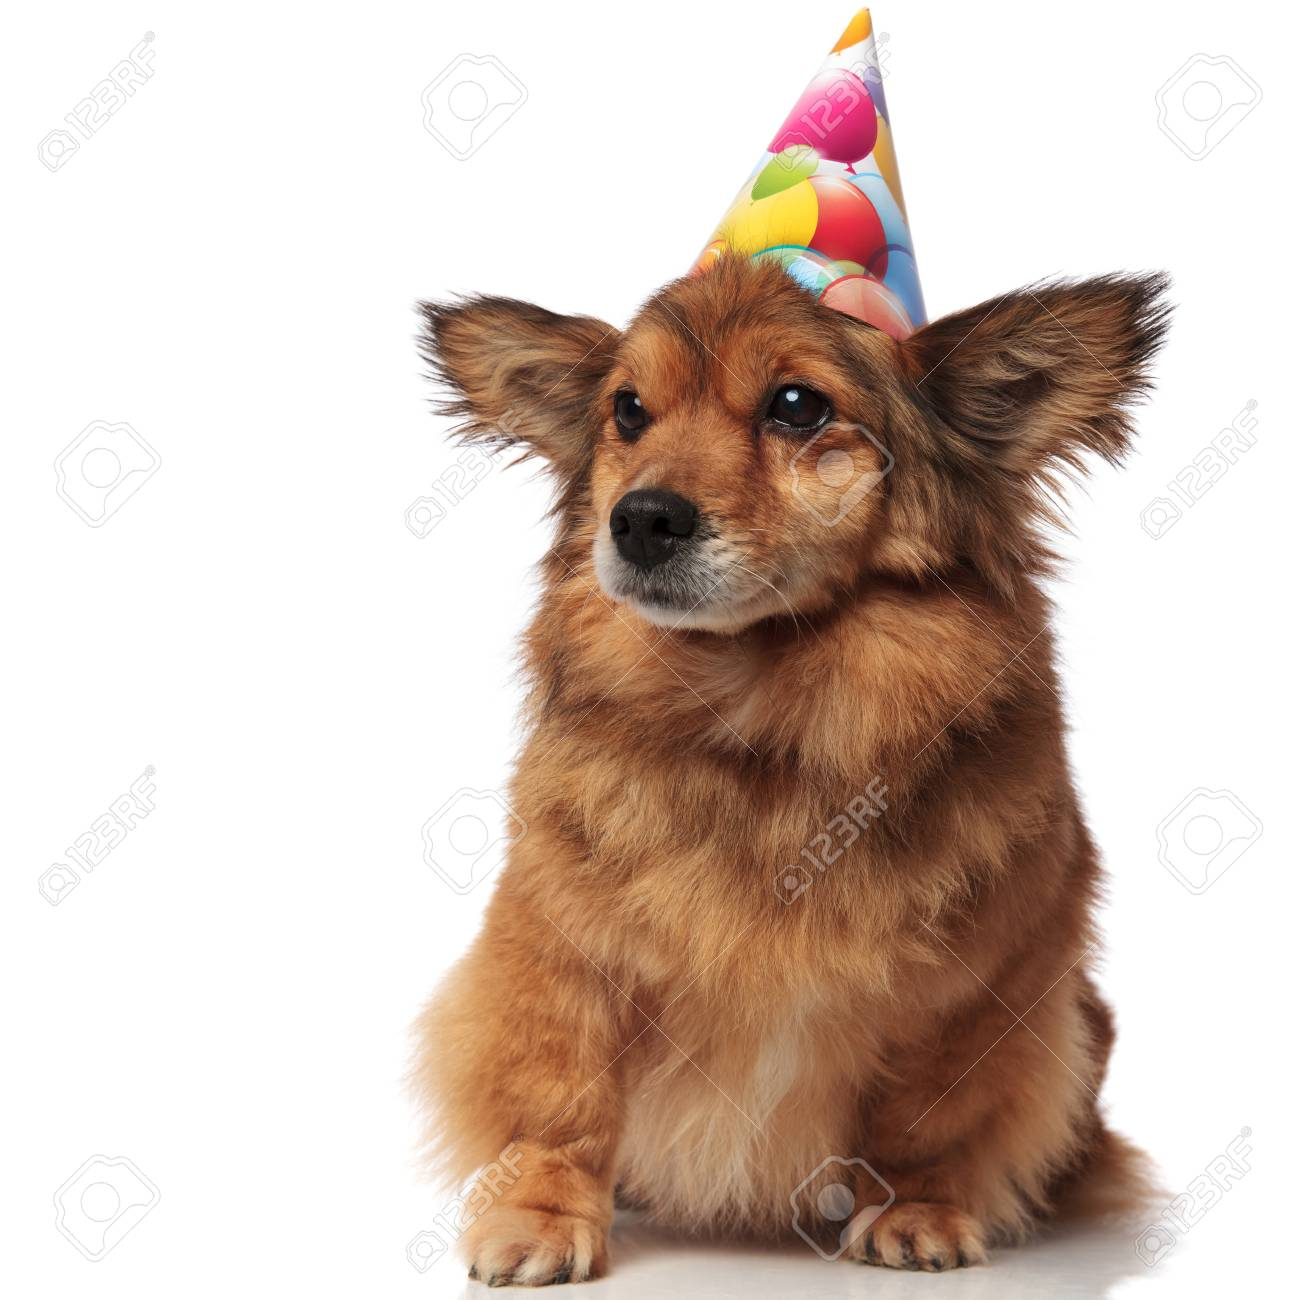 Curious Brown Seated Dog With Birthday Hat Looks To Side On White Background Stock Photo